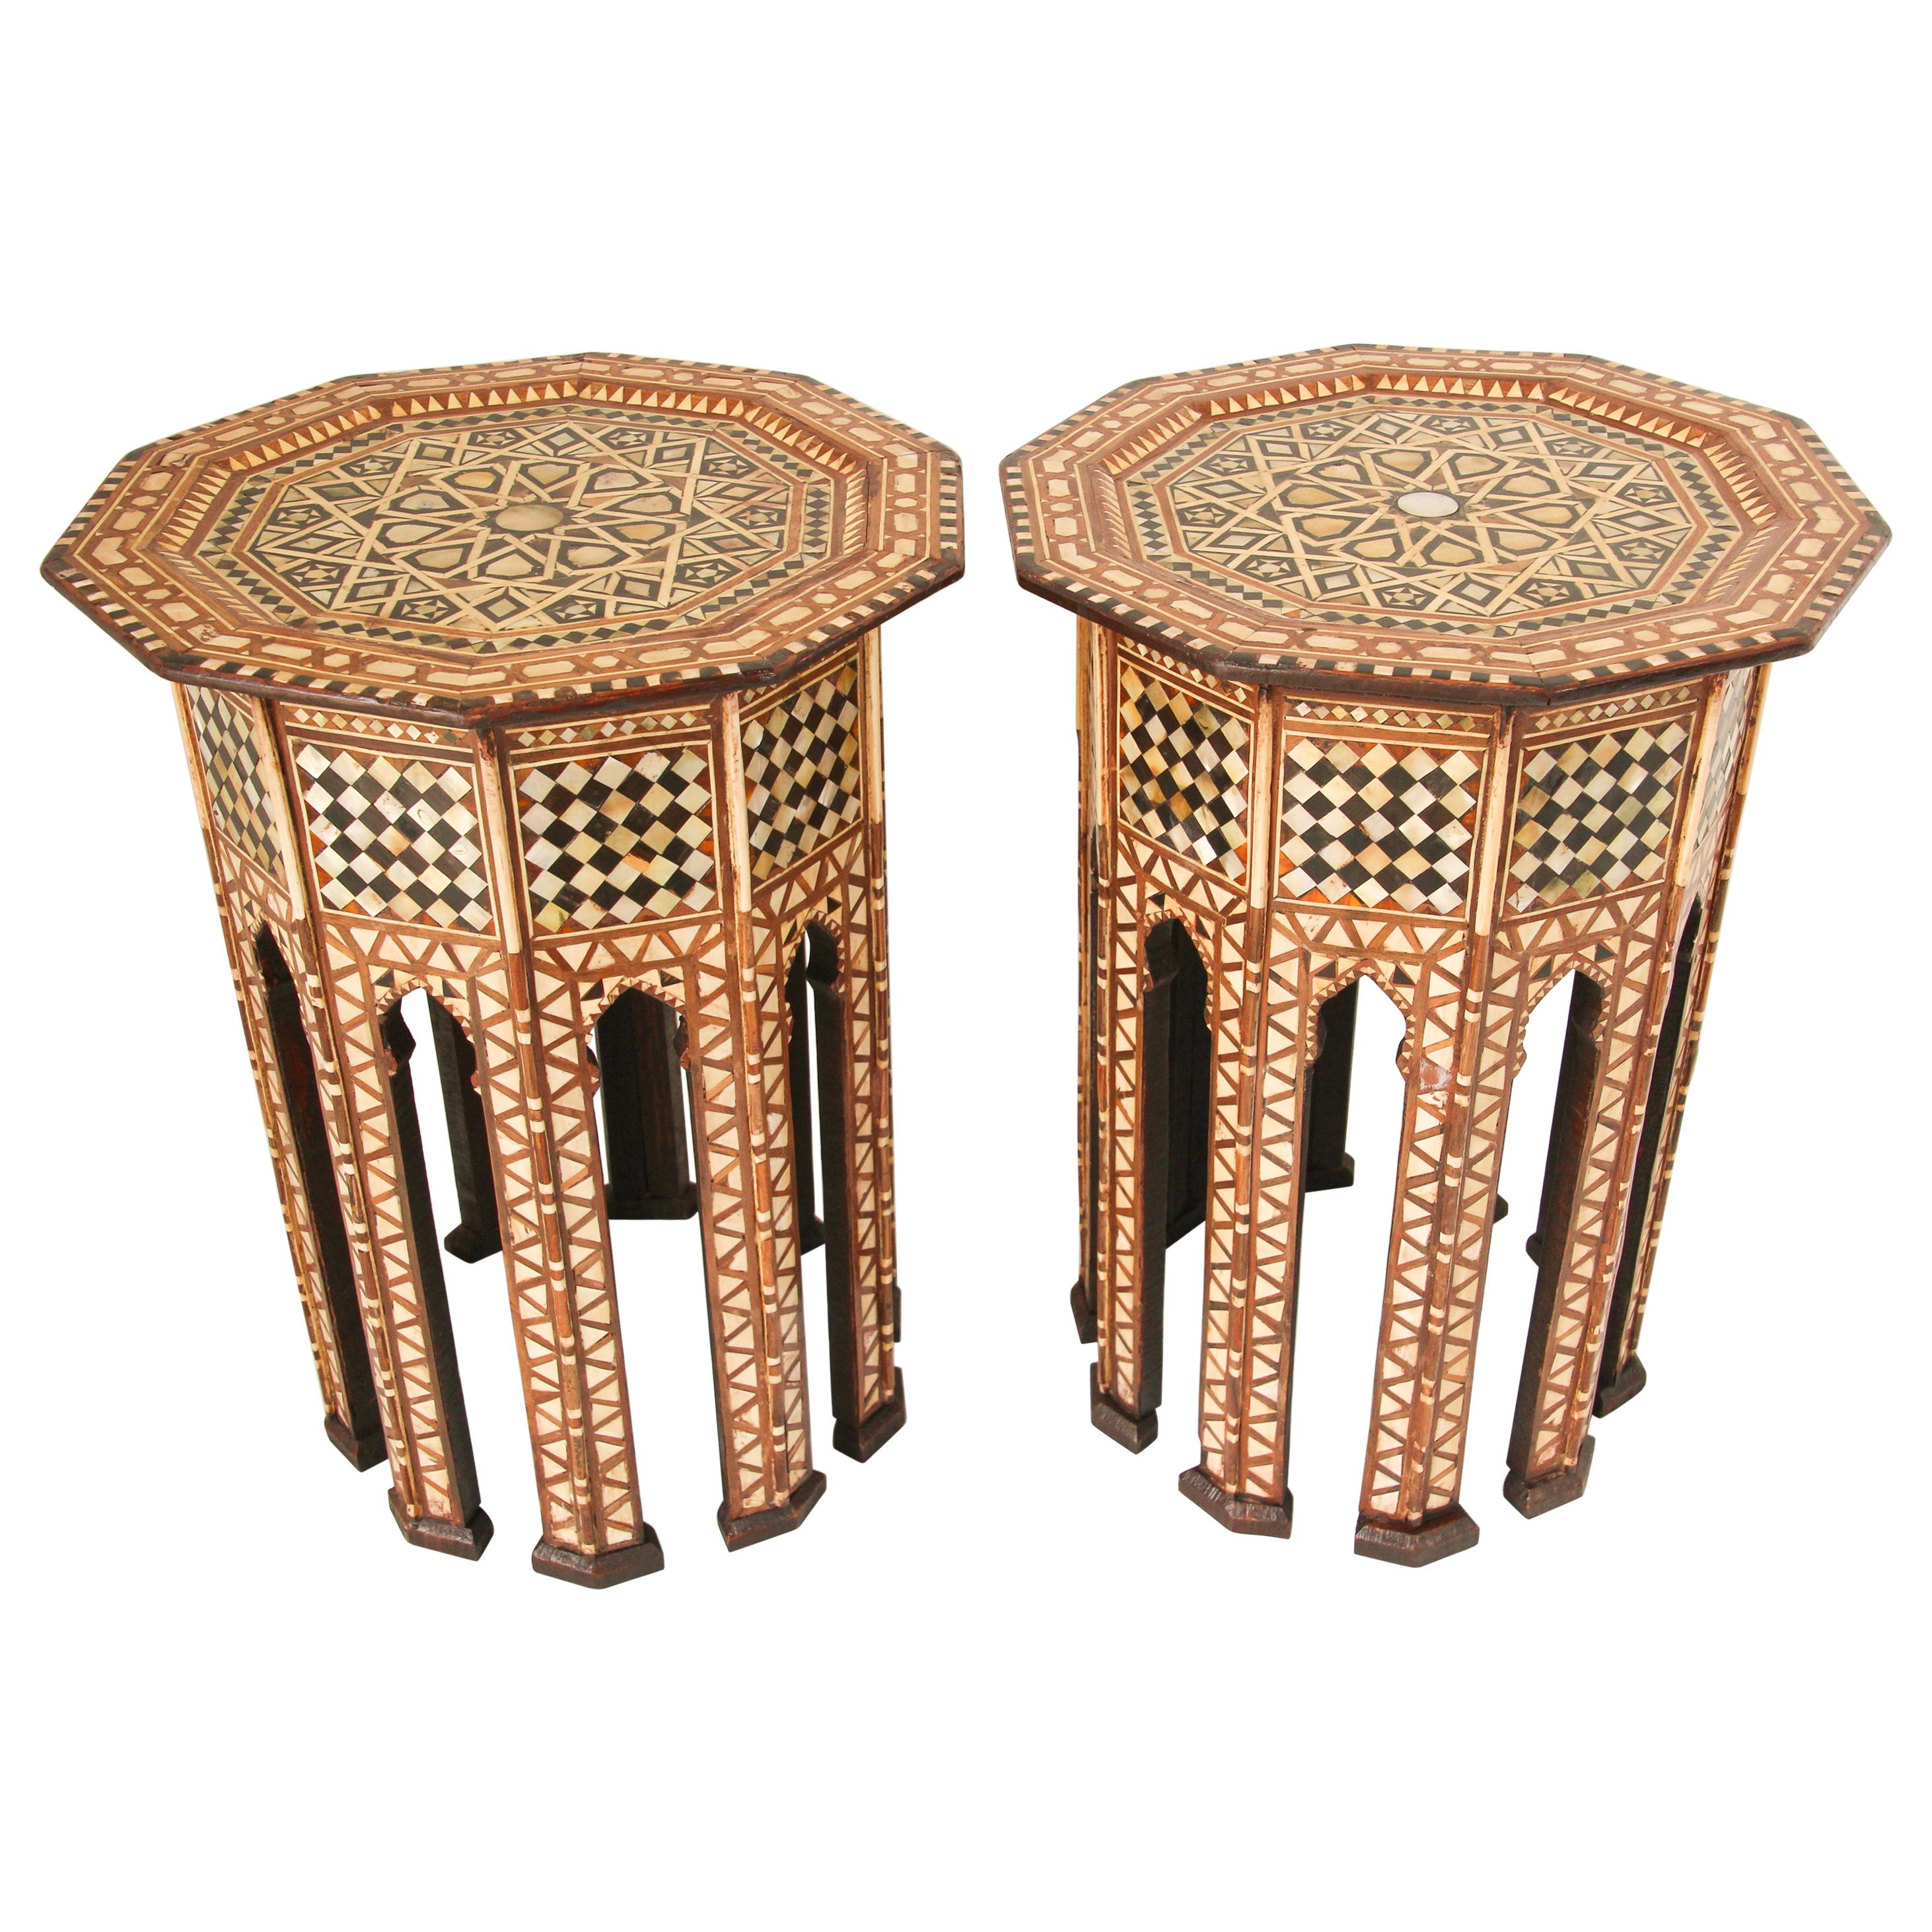 Moorish Octagonal Tables Inlaid with Mother of Pearl